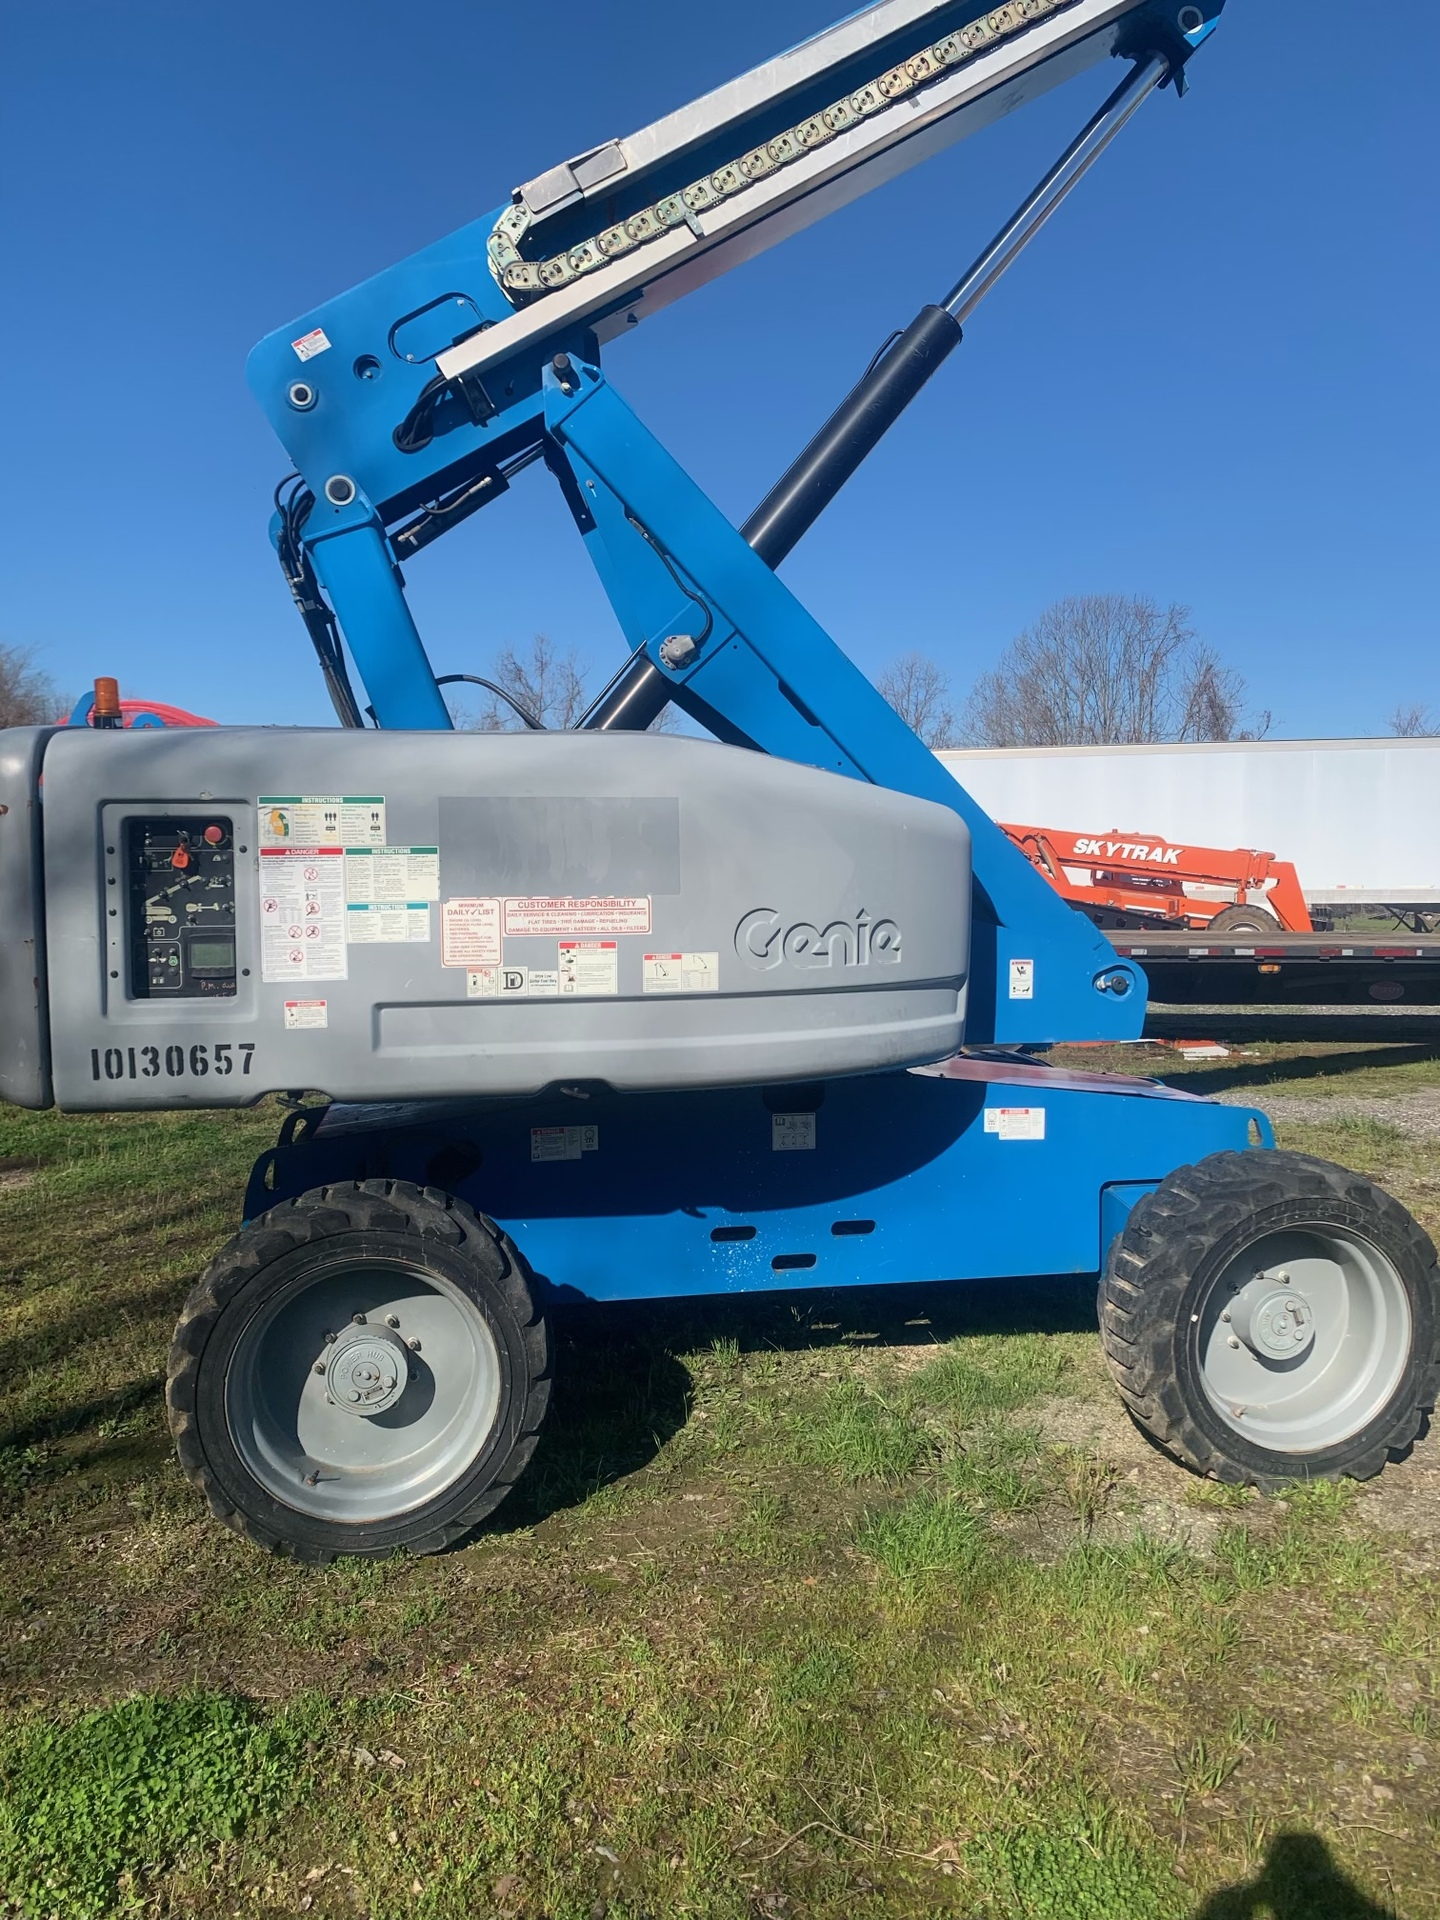 2013 Genie S60 Manlift